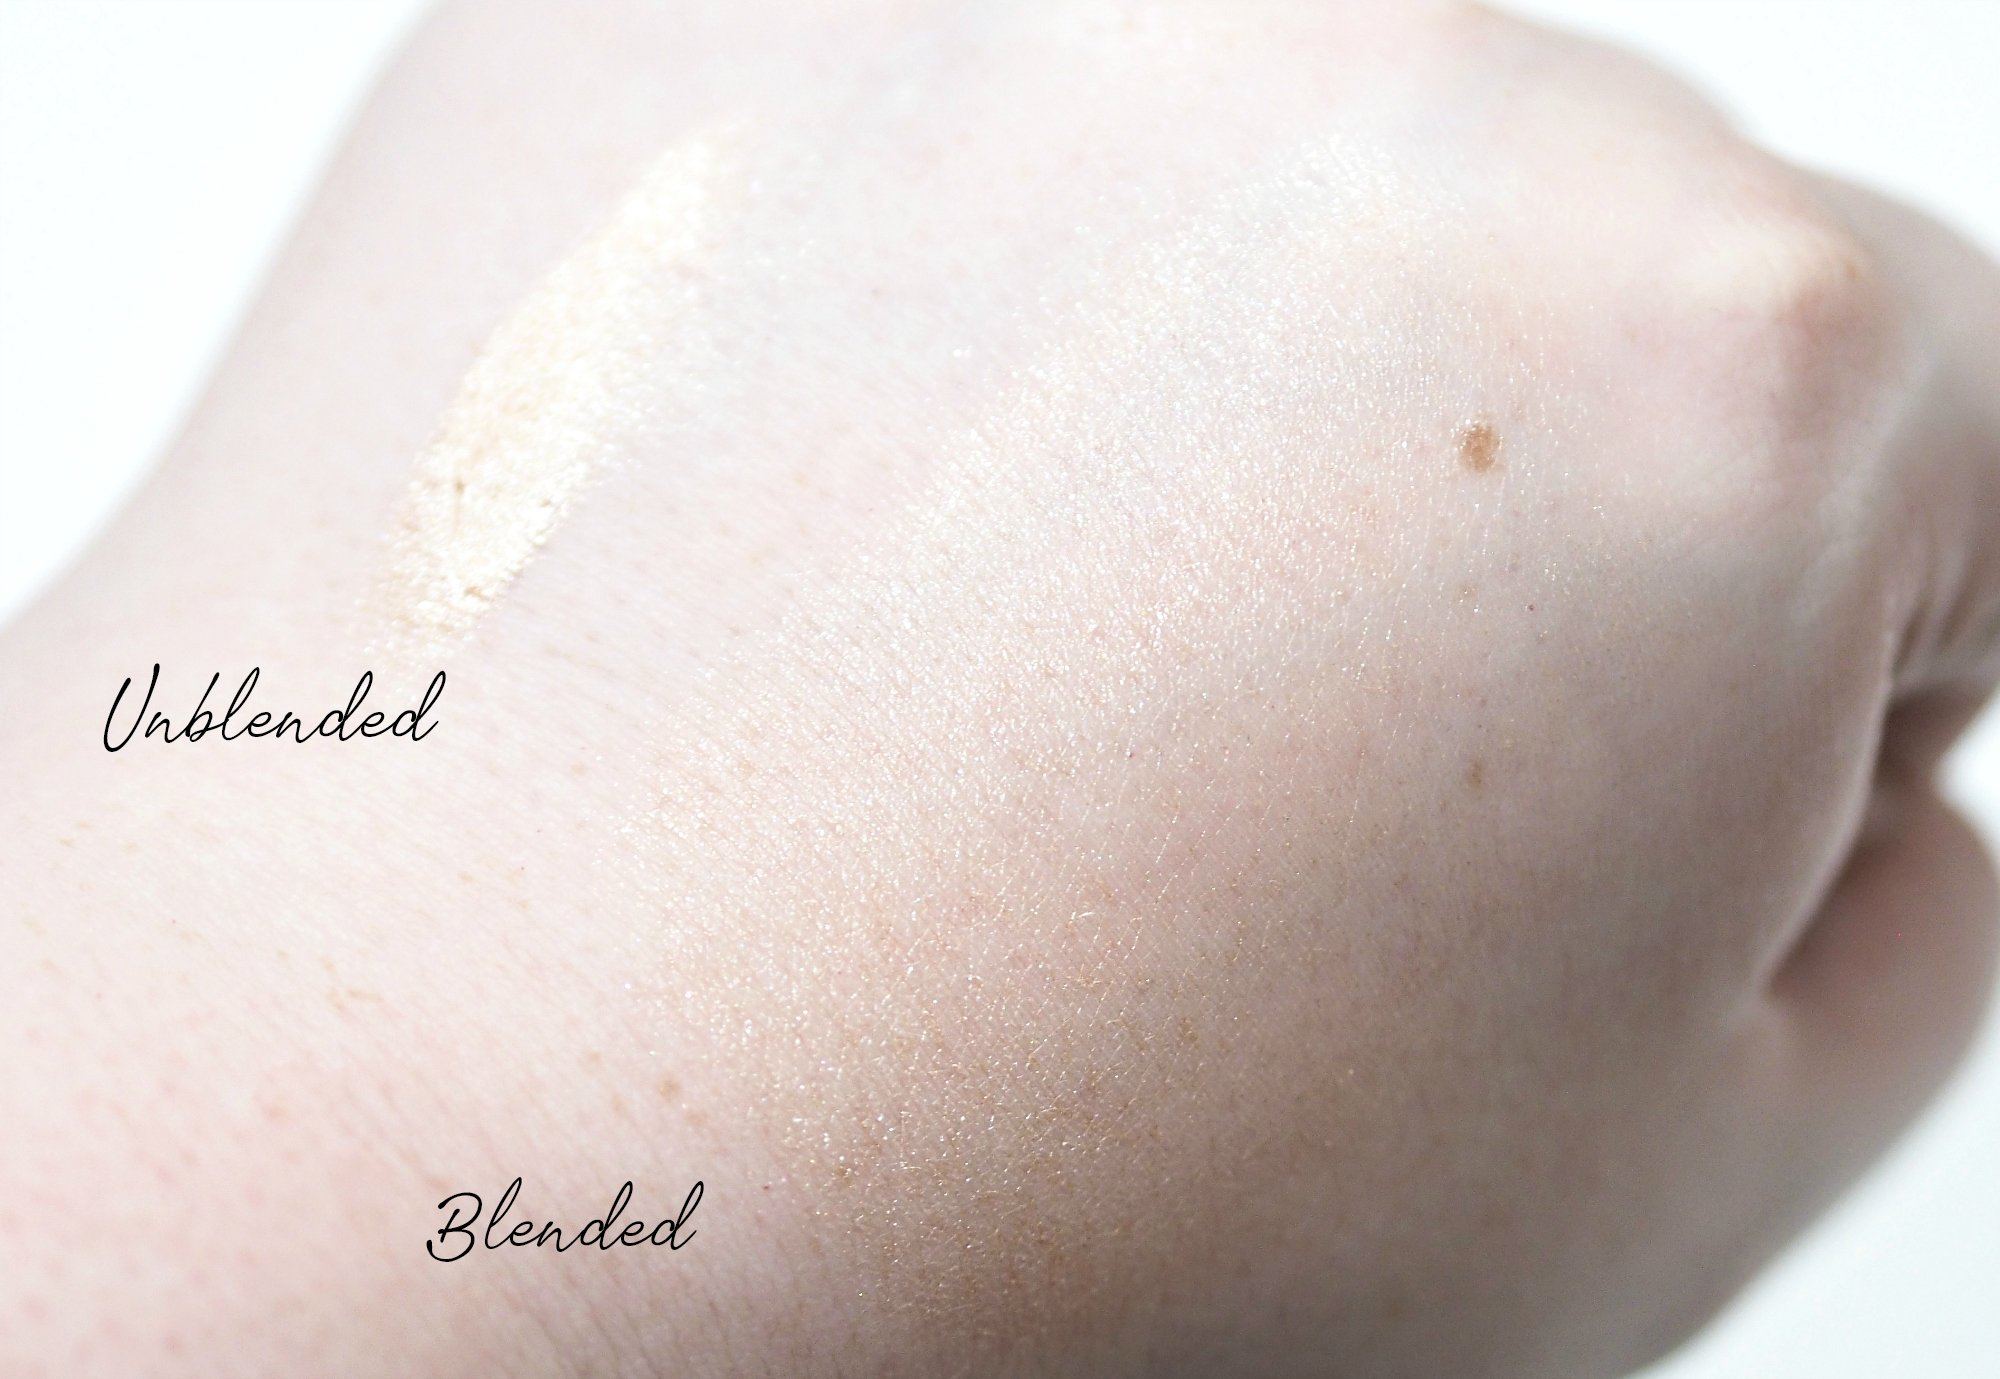 Tarte Tarteist PRO Glow Liquid Highlighter Review and Swatches in the shade Stunner